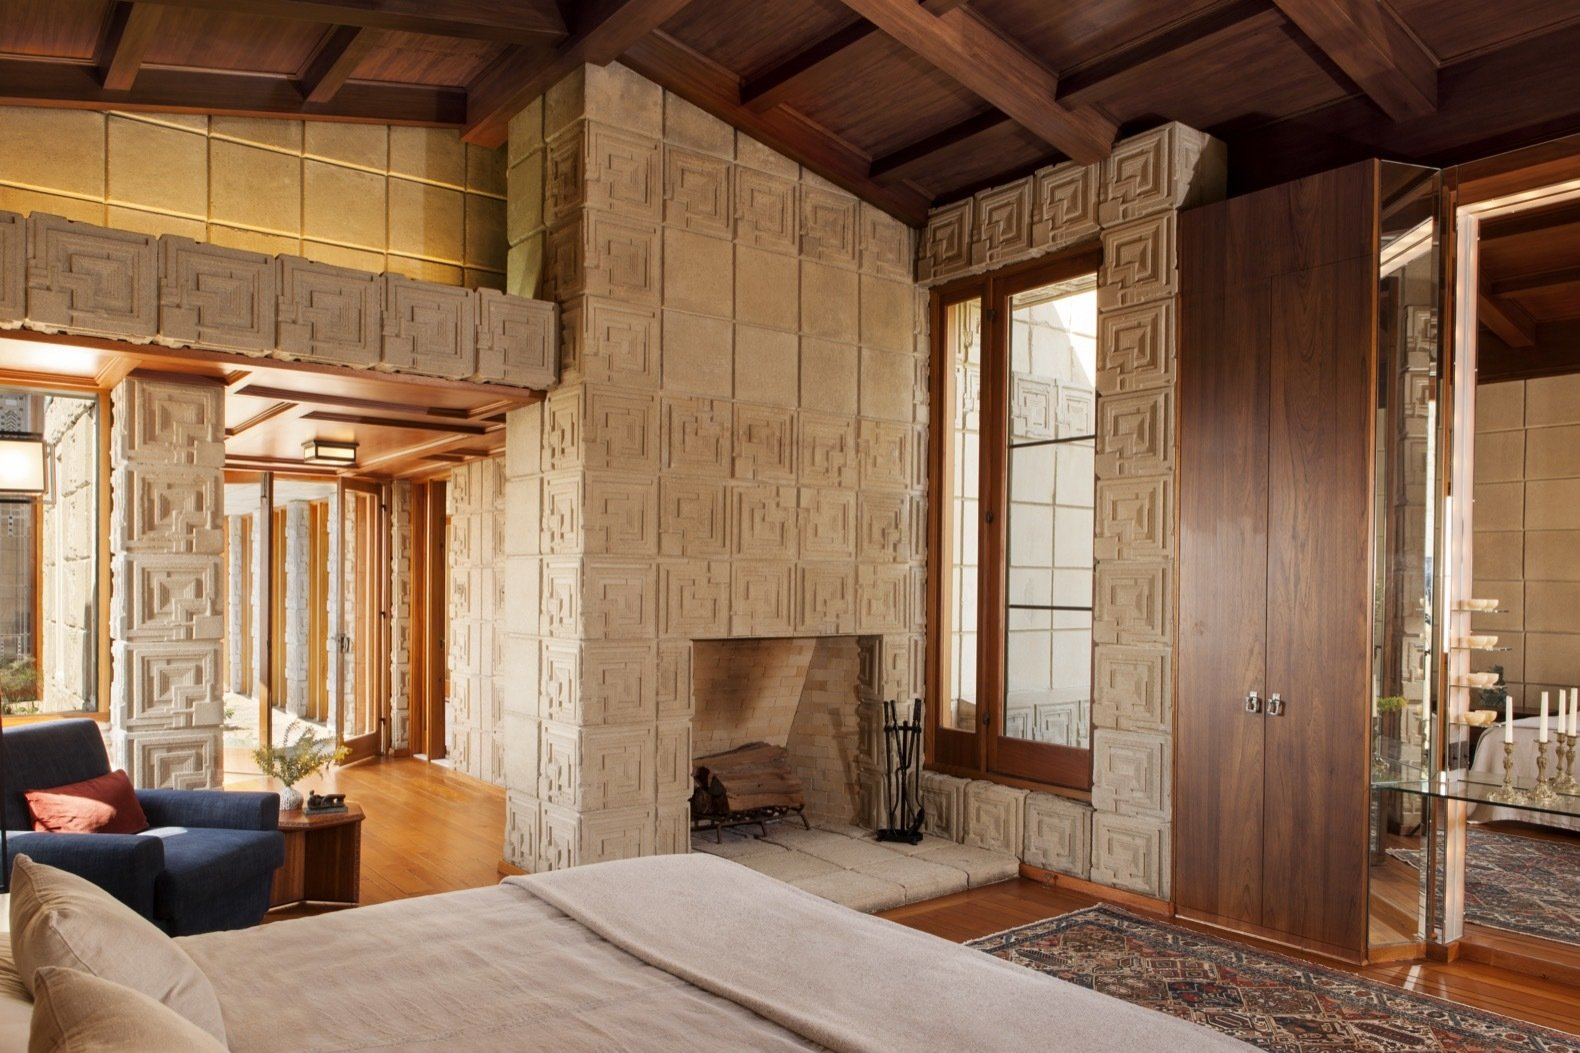 Bedroom, Bed, Medium Hardwood Floor, Chair, and Rug Floor The 6,200-square-foot property includes three bedrooms and three-and-a-half baths.  Photo 17 of 23 in Frank Lloyd Wright's Iconic Ennis House Is Listed For $23M